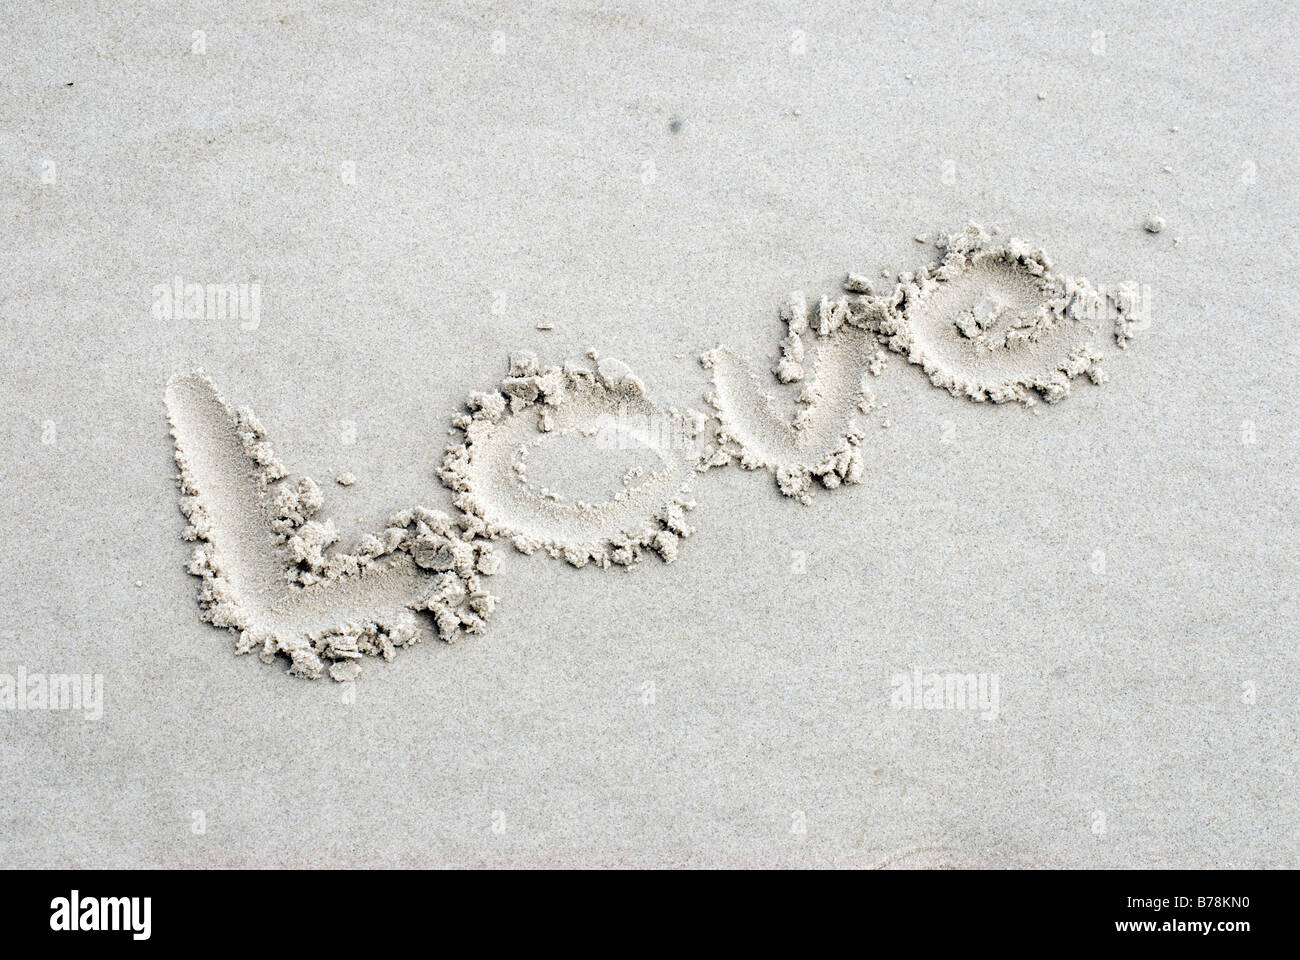 Germany, Amrum, The word Love written in sand - Stock Image